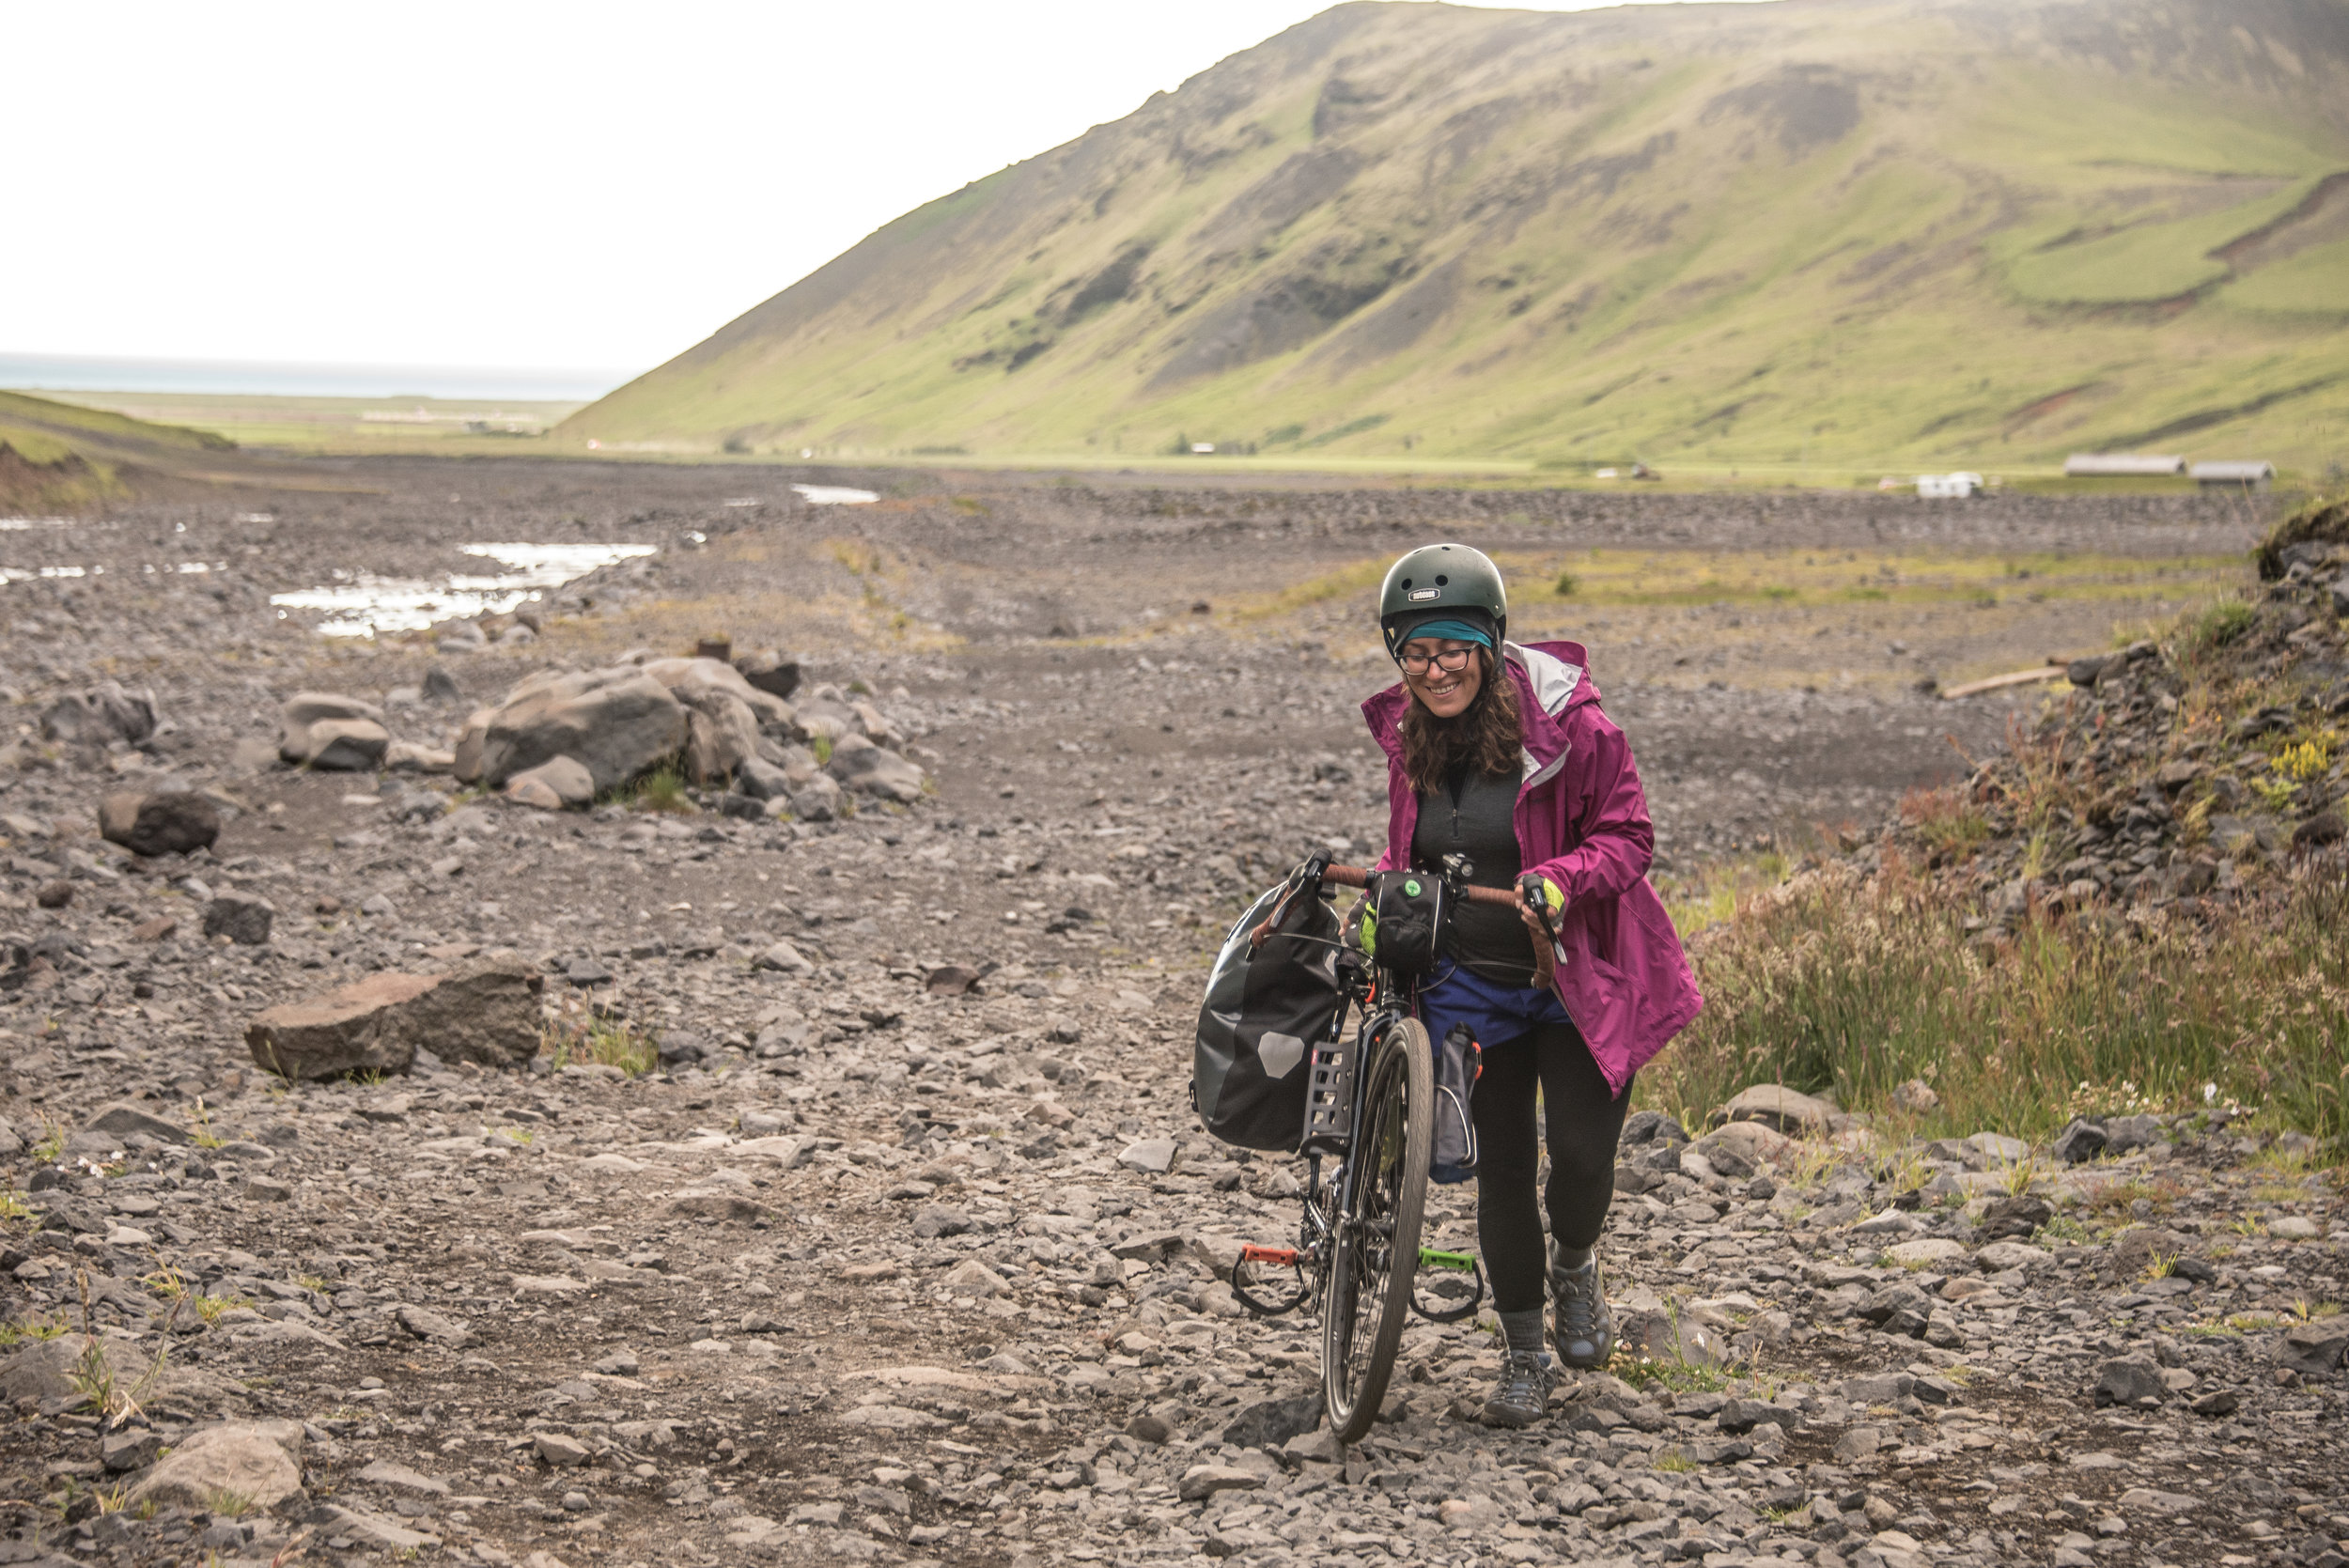 En route to an abandoned geothermal pool in southern Iceland. When the pushing gets tough, the tough get pushing.